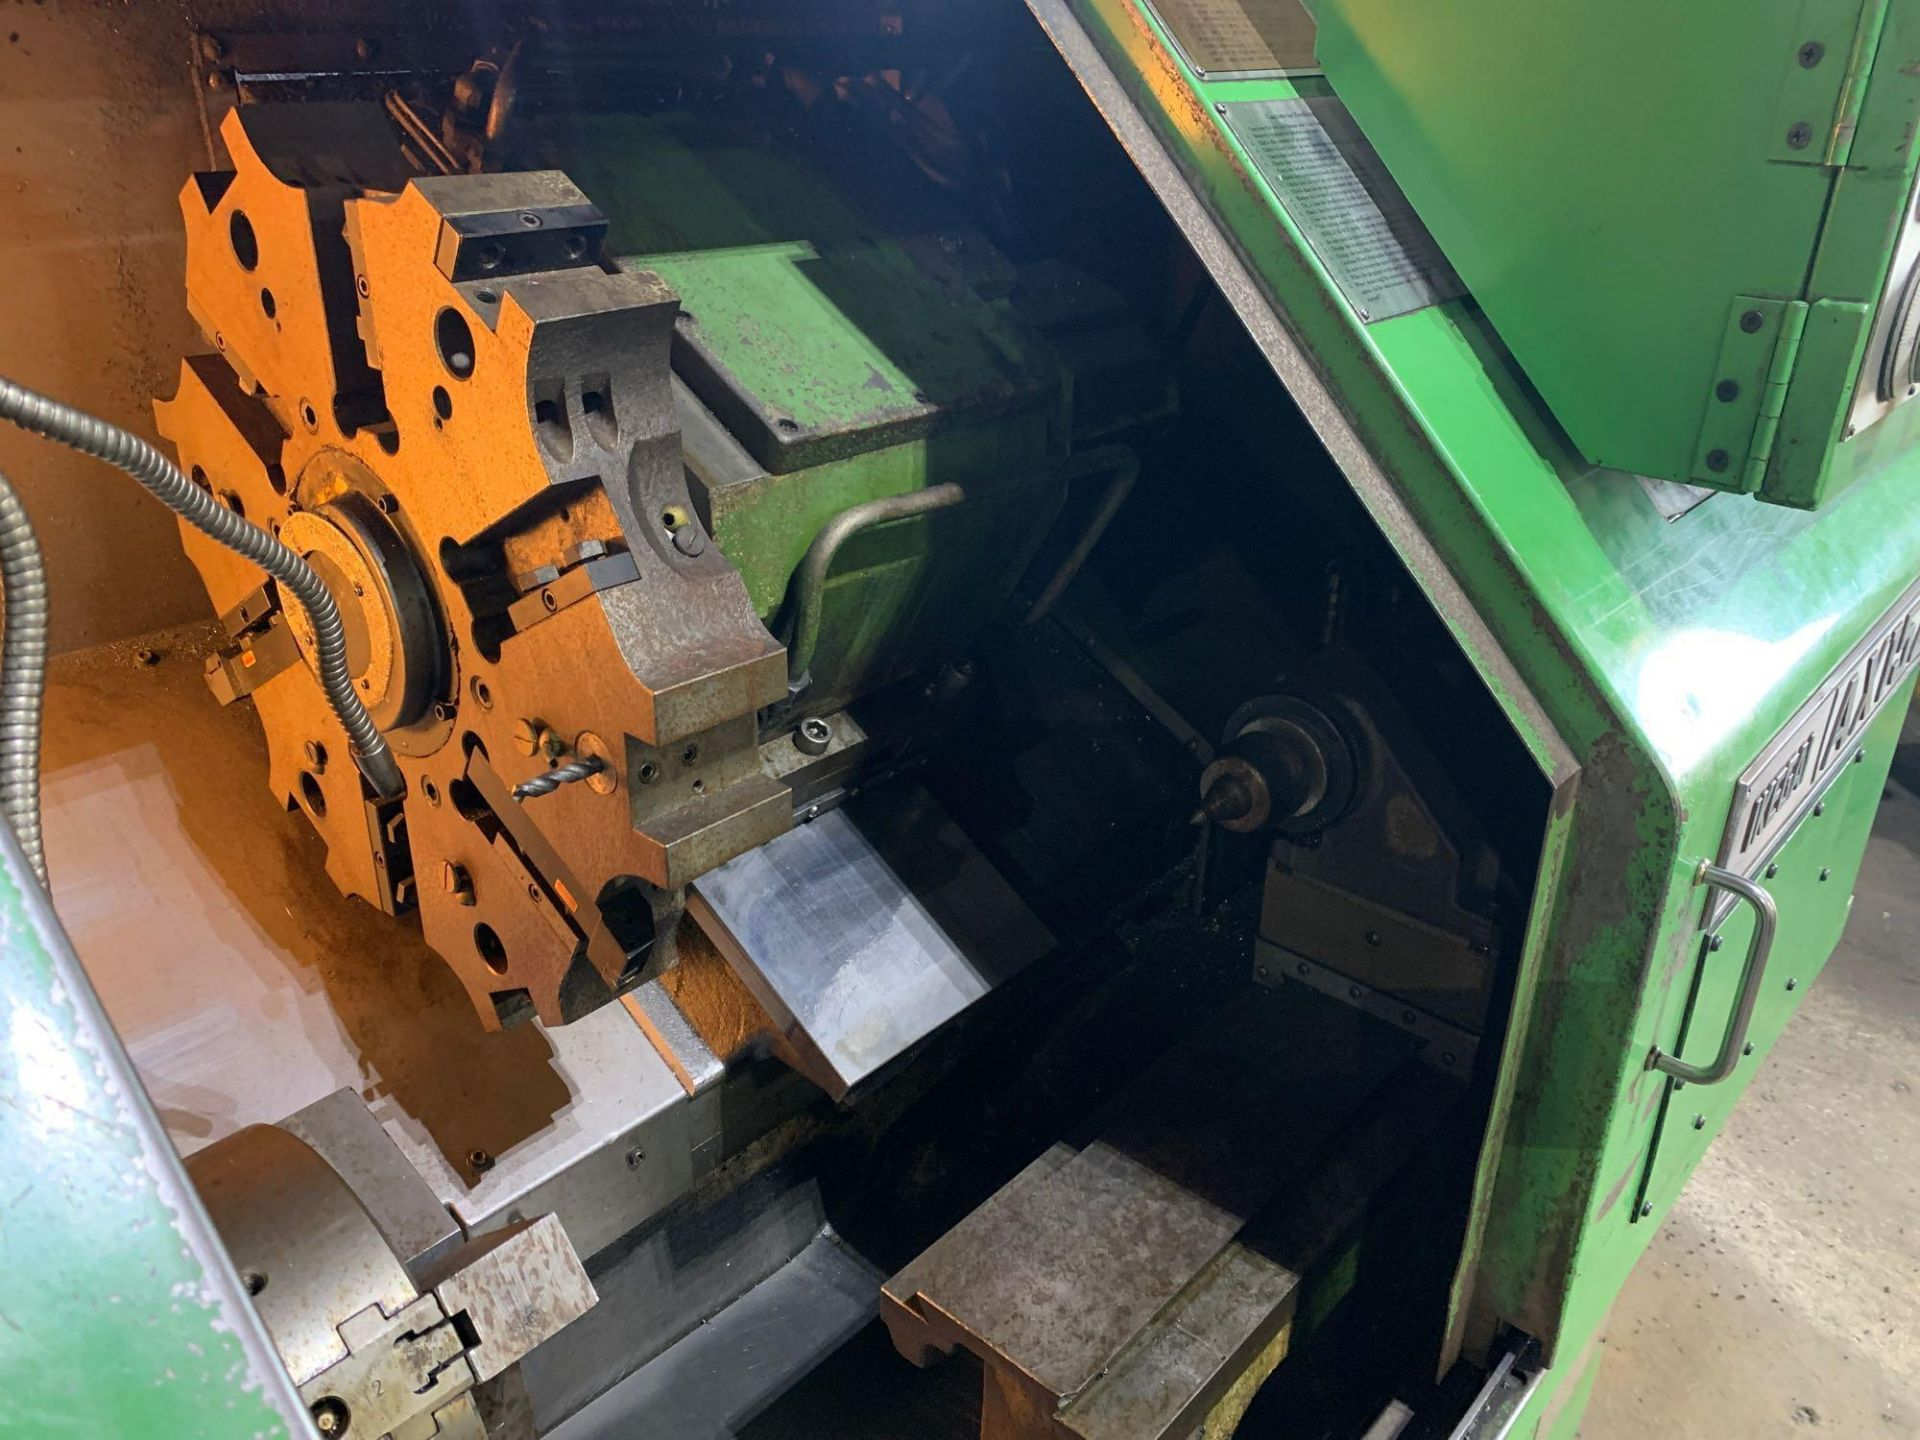 IKEGAI AX-15Z CNC Slant Bed Turning Center Serial Number: 50130V 2-Axis Machine Fanuc 10T Control 12 - Image 11 of 18